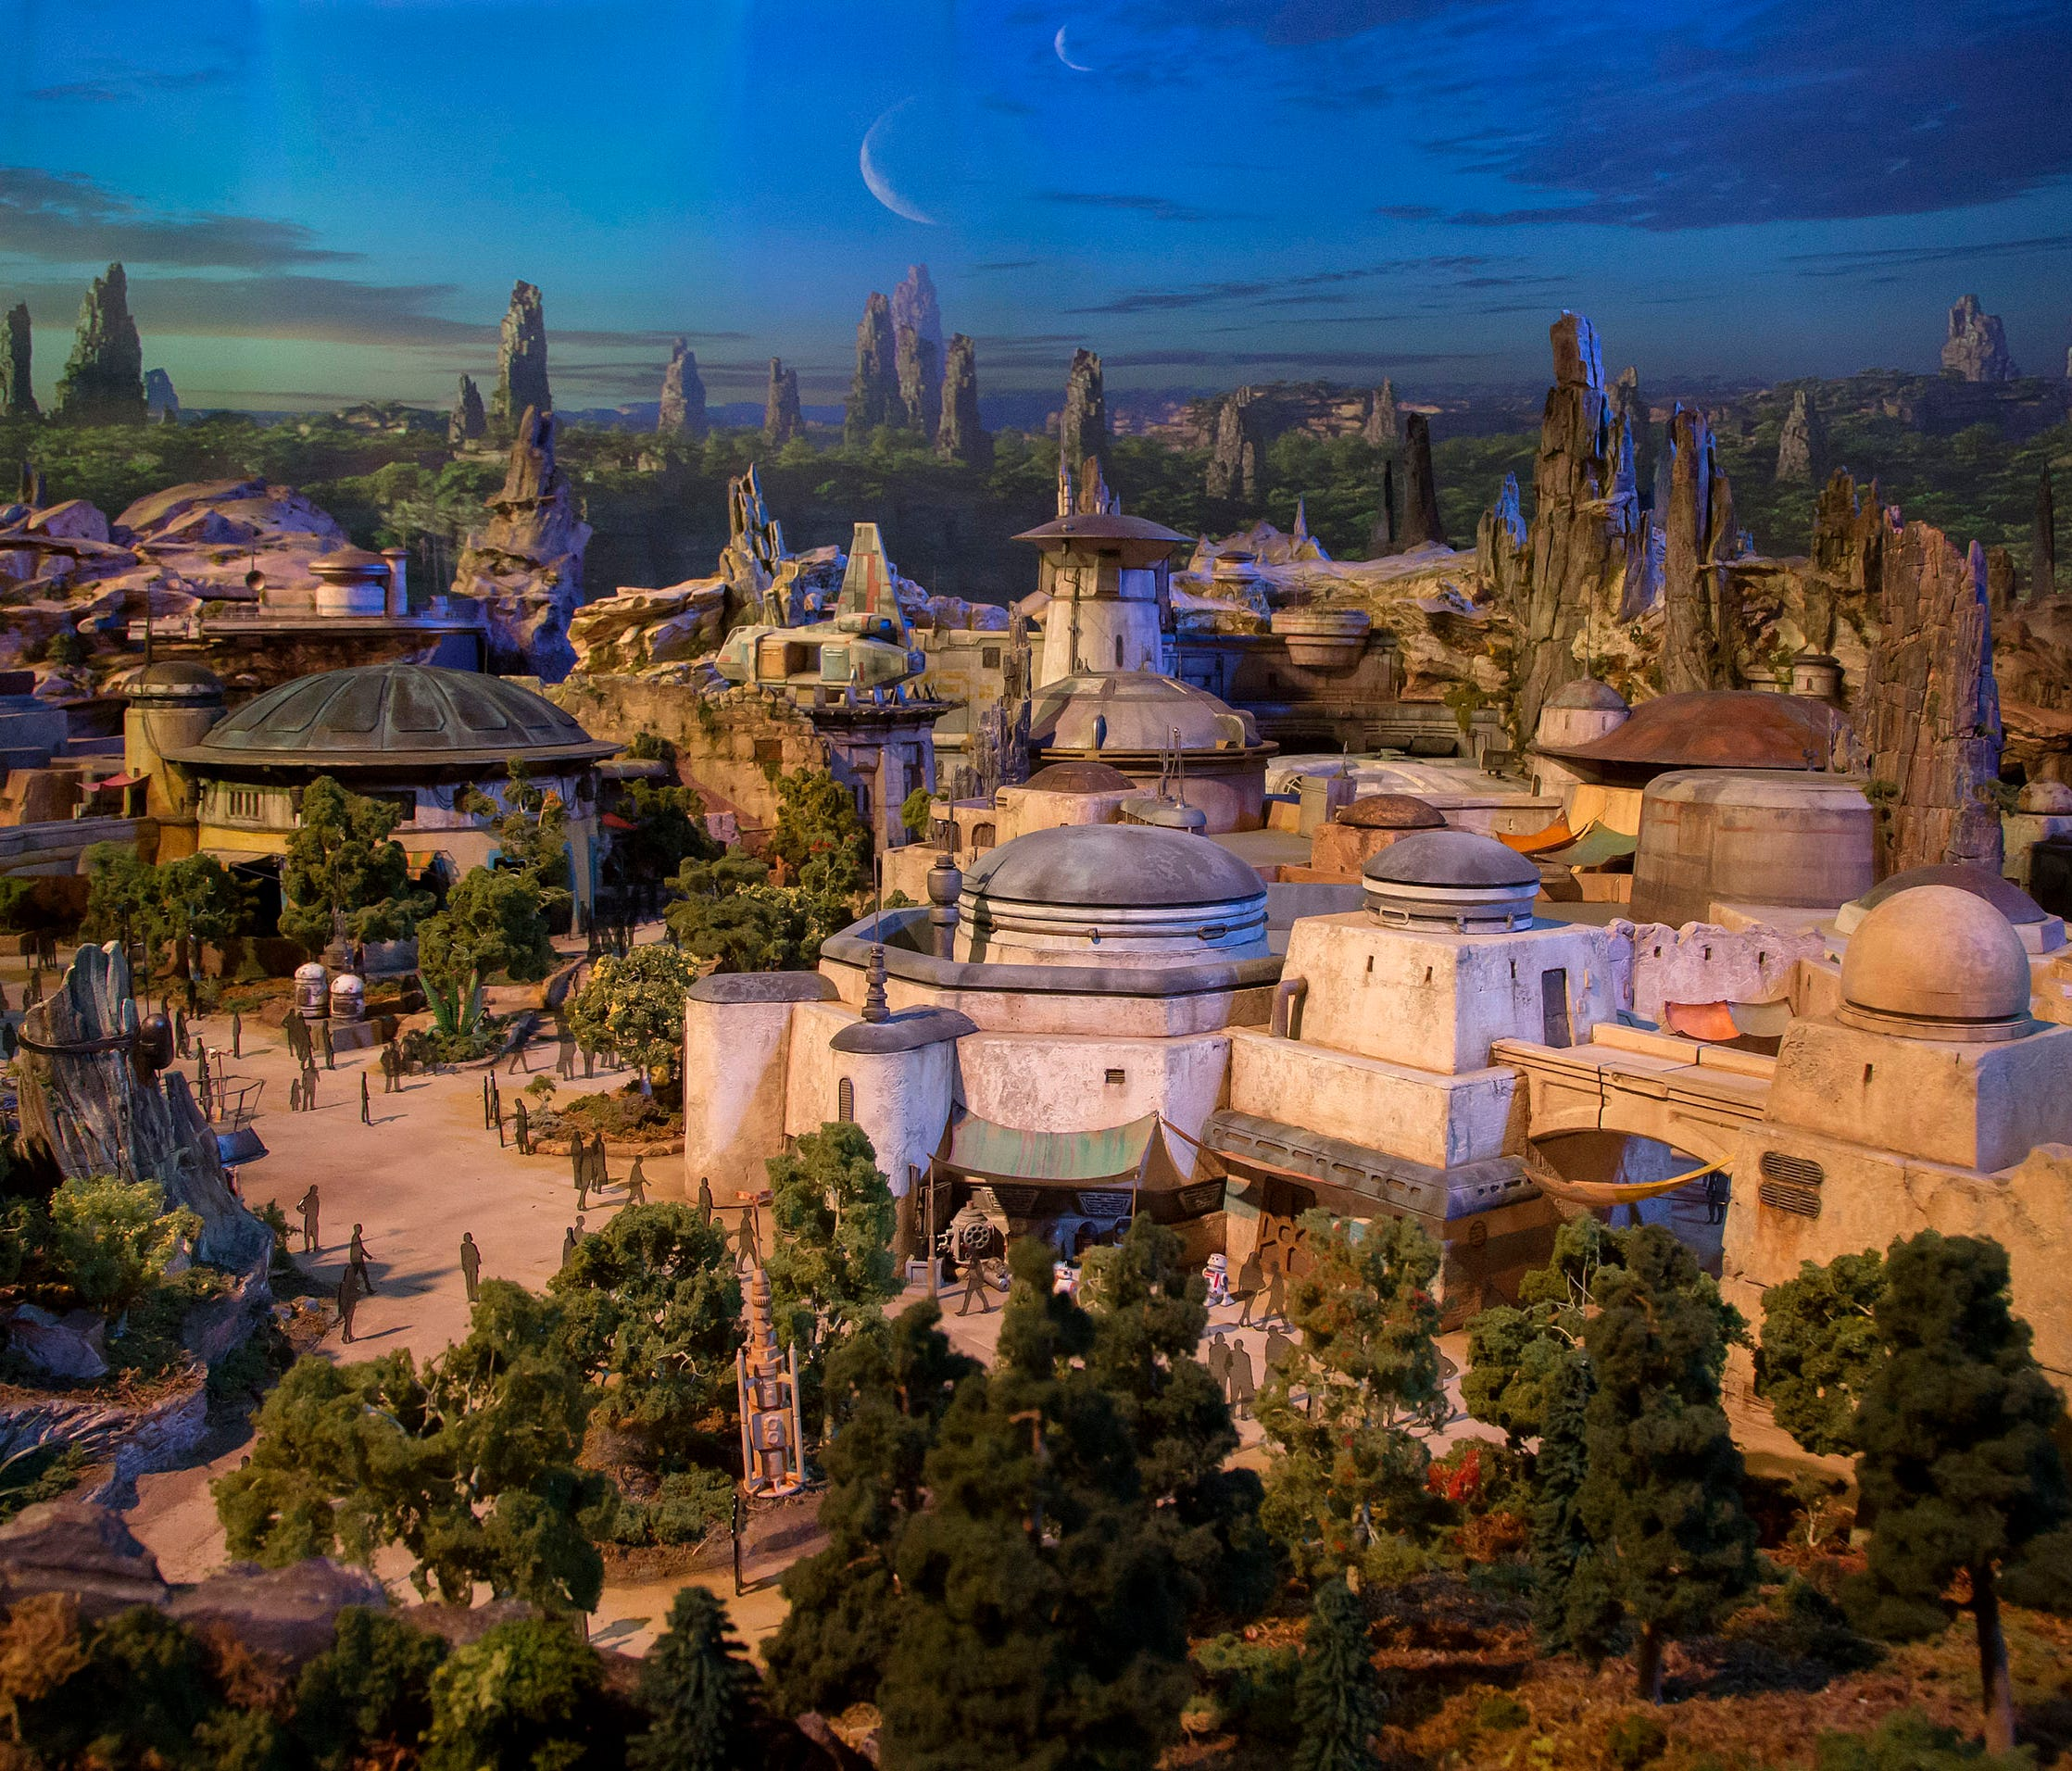 A detailed model of Disney's Star Wars: Galaxy's Edge provides an early look at the new 14-acre land. To accommodate its ongoing construction (it will open May 2019), several attractions were temporarily closed, including the Disneyland Railroad and